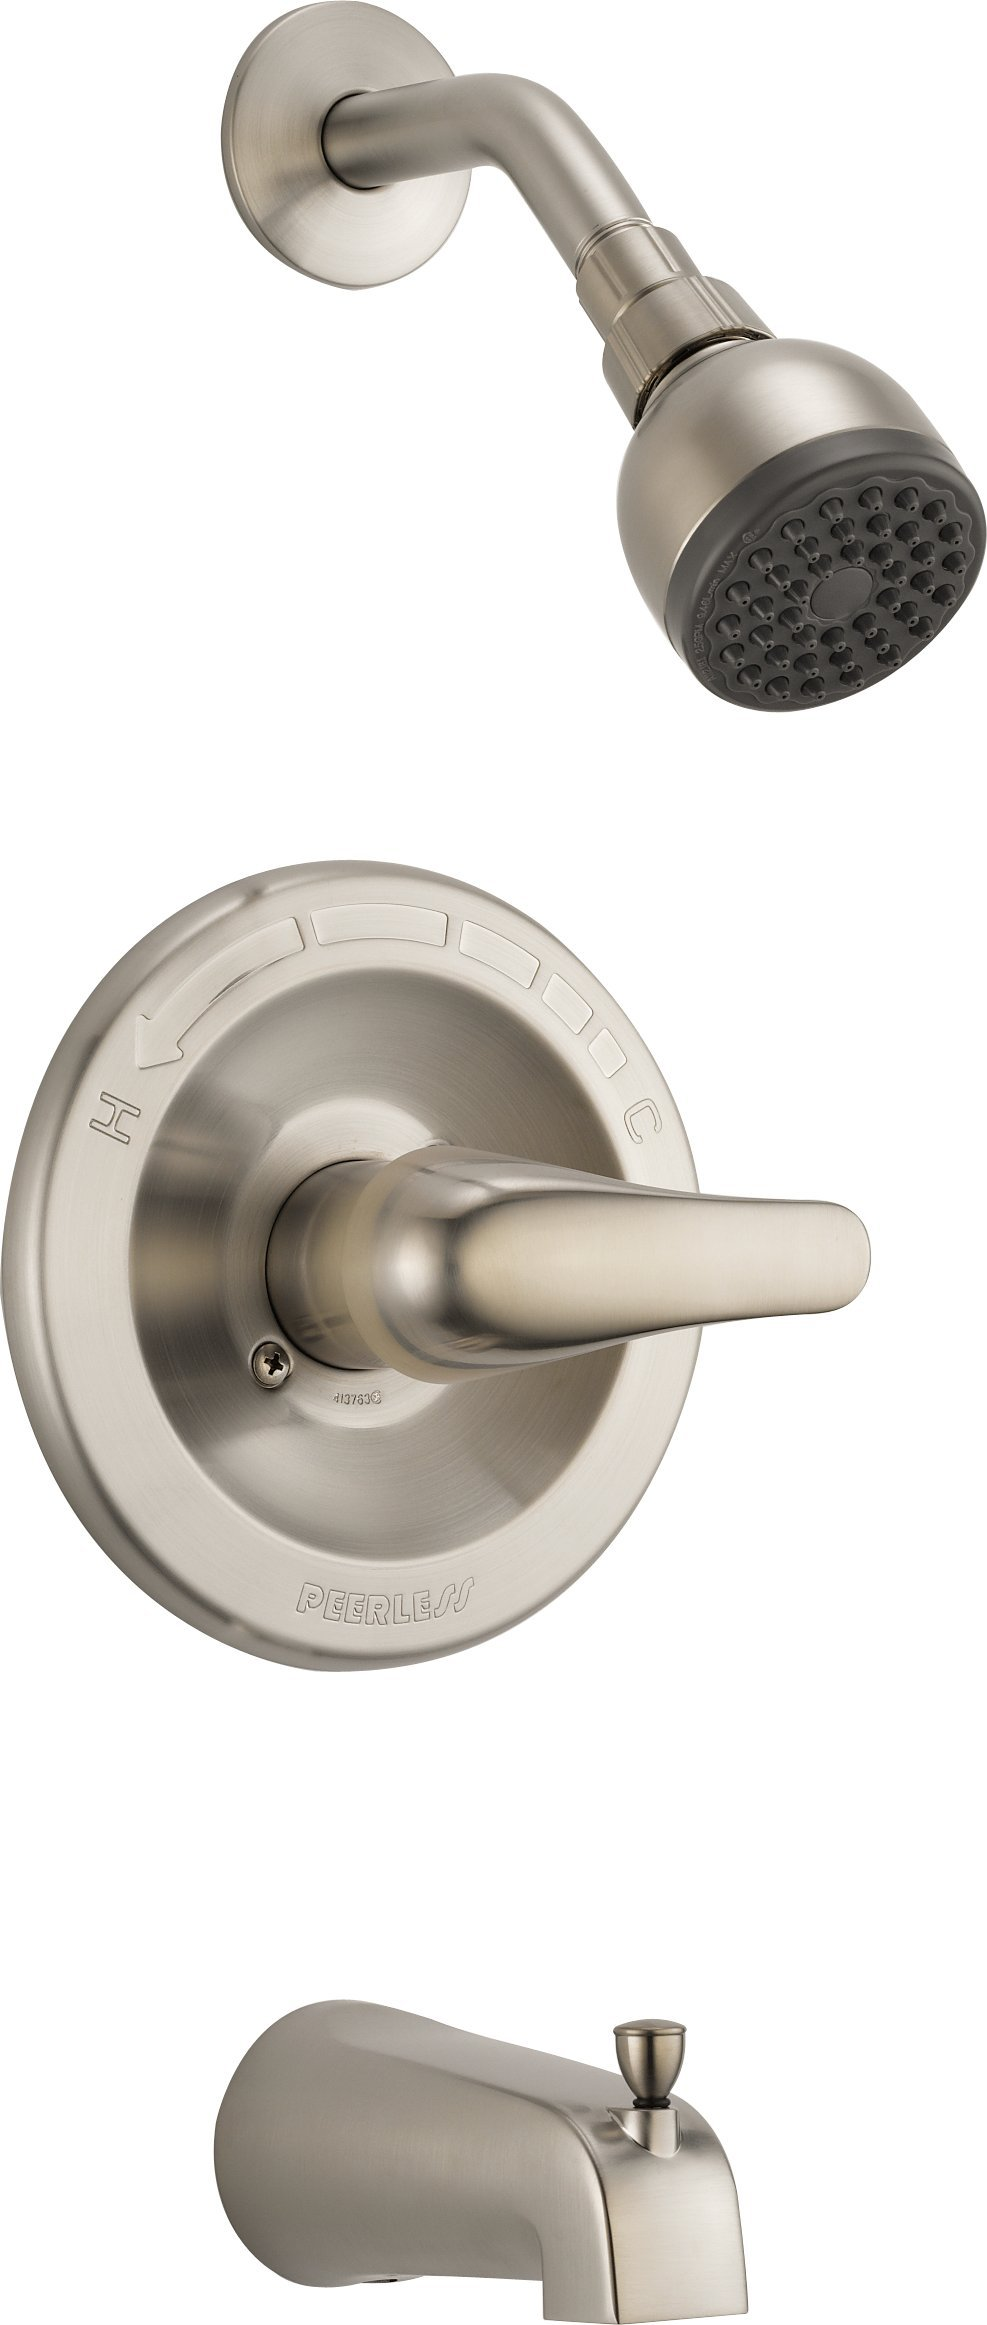 Peerless PTT188753-BN Classic Tub and Shower Trim, Brushed Nickel